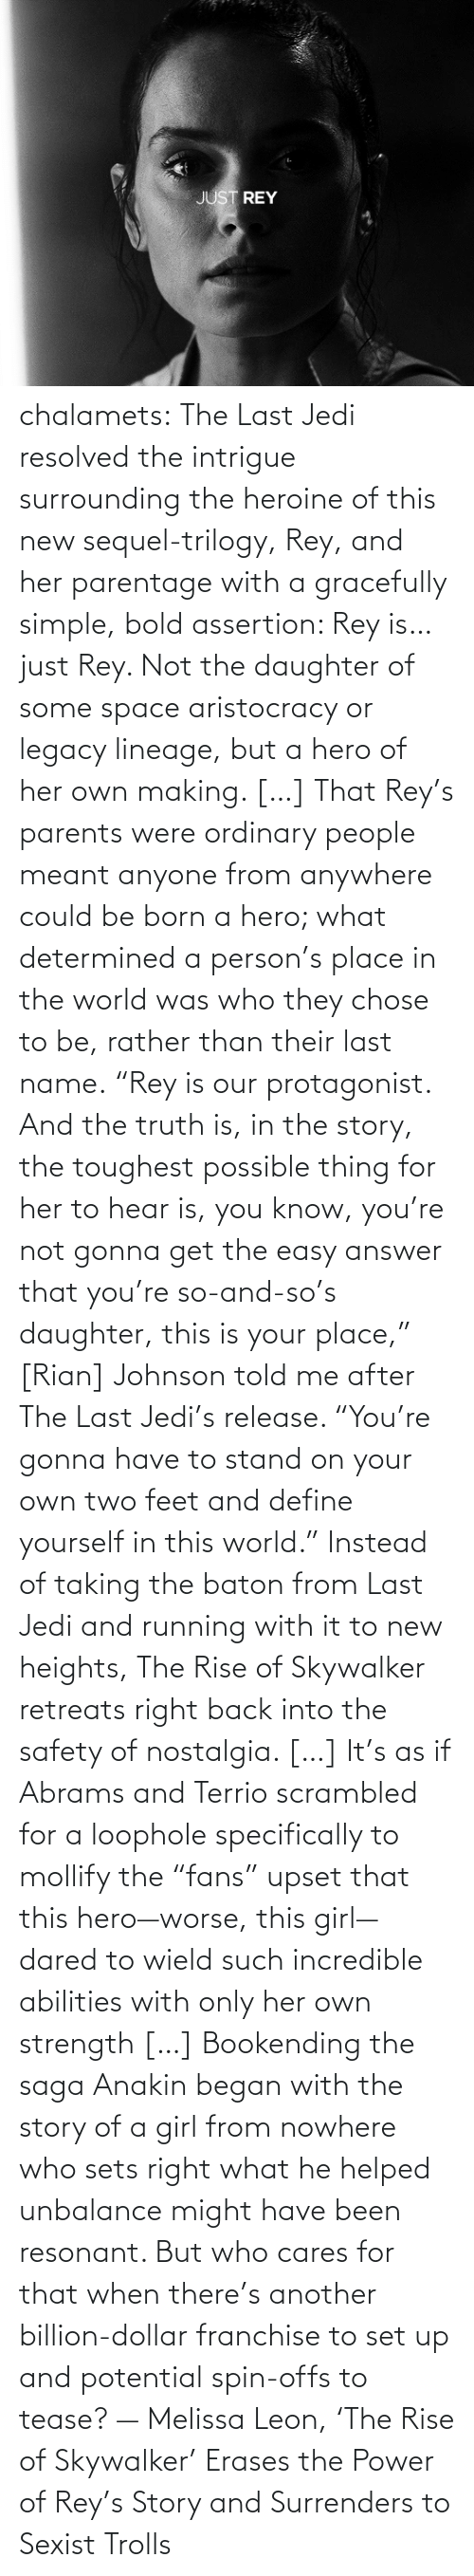 "Define: chalamets:  The Last Jedi resolved the intrigue surrounding the heroine of this new sequel-trilogy, Rey, and her parentage with a gracefully simple, bold assertion: Rey is… just Rey. Not the daughter of some space aristocracy or legacy lineage, but a hero of her own making. […] That Rey's parents were ordinary people meant anyone from anywhere could be born a hero; what determined a person's place in the world was who they chose to be, rather than their last name. ""Rey is our protagonist. And the truth is, in the story, the toughest possible thing for her to hear is, you know, you're not gonna get the easy answer that you're so-and-so's daughter, this is your place,"" [Rian] Johnson told me after The Last Jedi's release. ""You're gonna have to stand on your own two feet and define yourself in this world."" Instead of taking the baton from Last Jedi and running with it to new heights, The Rise of Skywalker retreats right back into the safety of nostalgia. […] It's as if Abrams and Terrio scrambled for a loophole specifically to mollify the ""fans"" upset that this hero—worse, this girl—dared to wield such incredible abilities with only her own strength […] Bookending the saga Anakin began with the story of a girl from nowhere who sets right what he helped unbalance might have been resonant. But who cares for that when there's another billion-dollar franchise to set up and potential spin-offs to tease? — Melissa Leon, 'The Rise of Skywalker' Erases the Power of Rey's Story and Surrenders to Sexist Trolls"